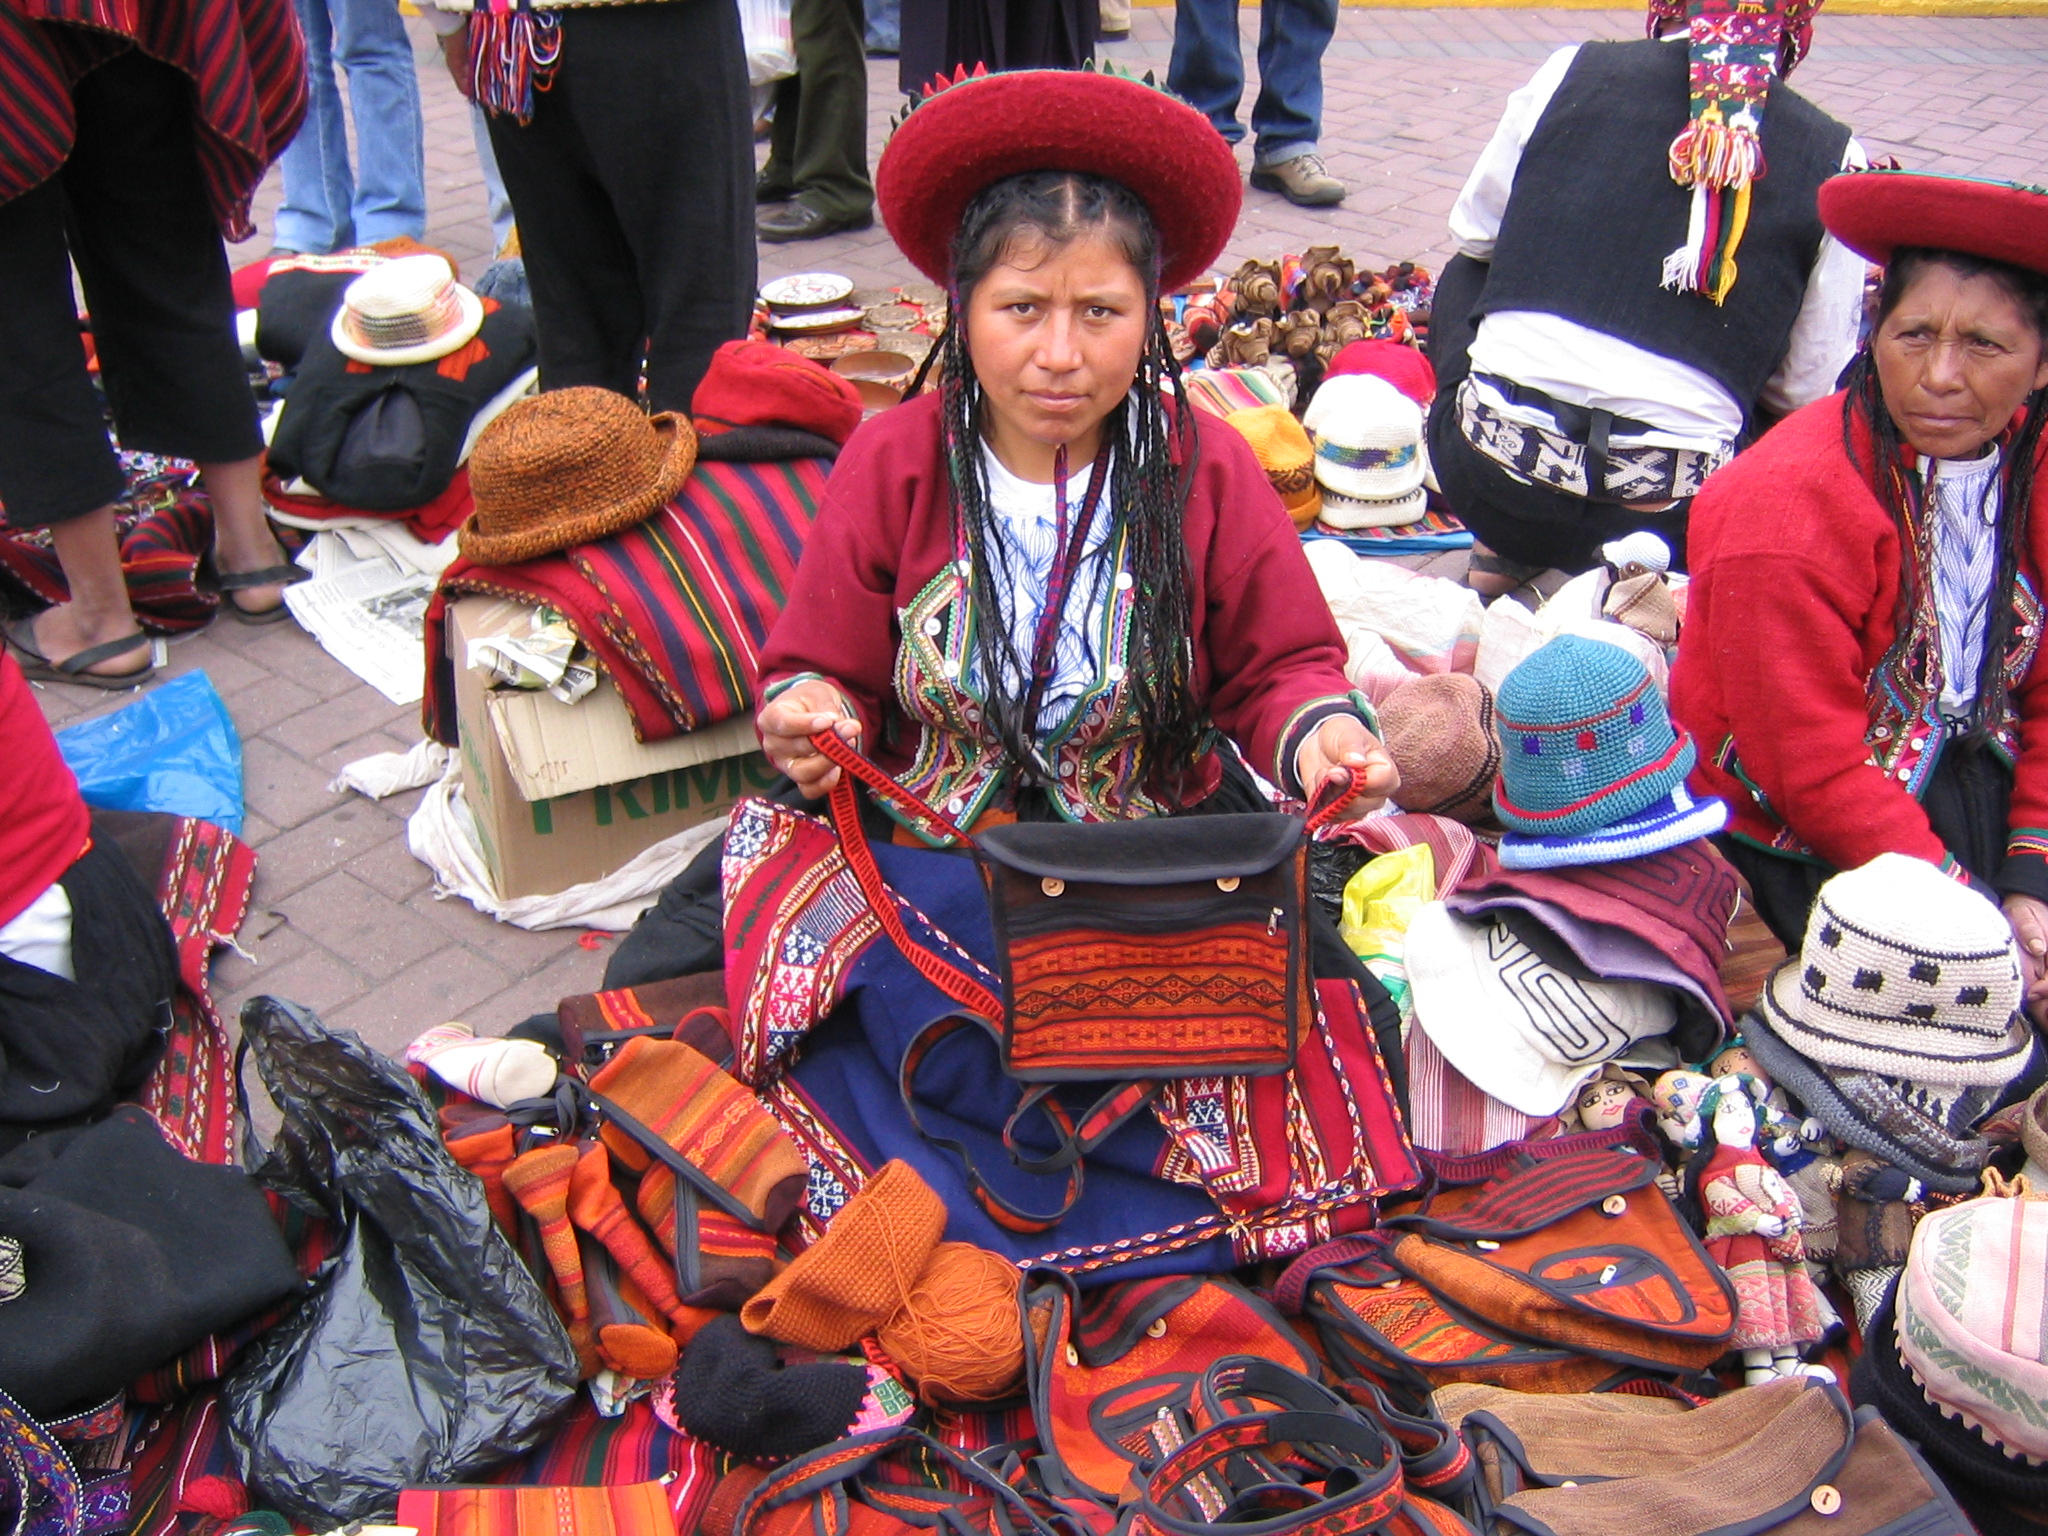 Andean lady selling her wares in Lima, Peru. Flickr - Phil Whitehouse.